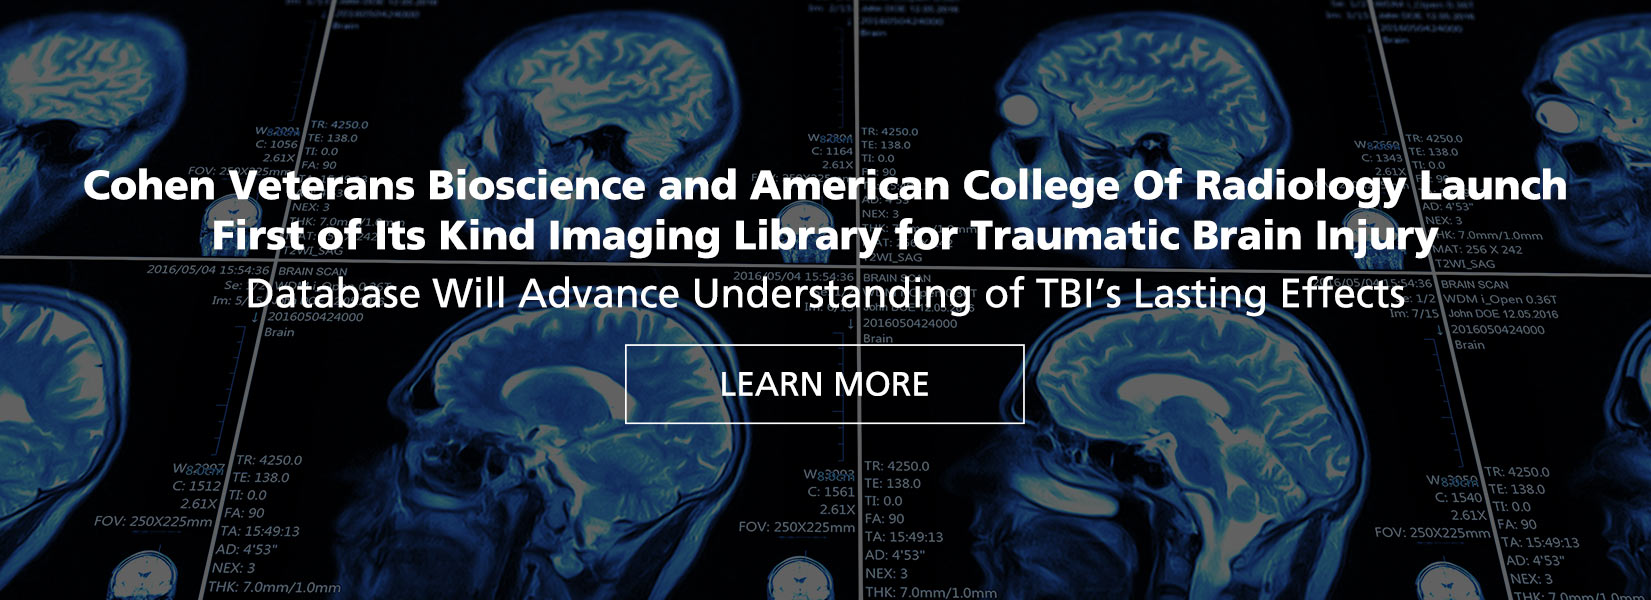 Cohen Veterans Bioscience and American College of Radiology Launch Imaging Library for TBI